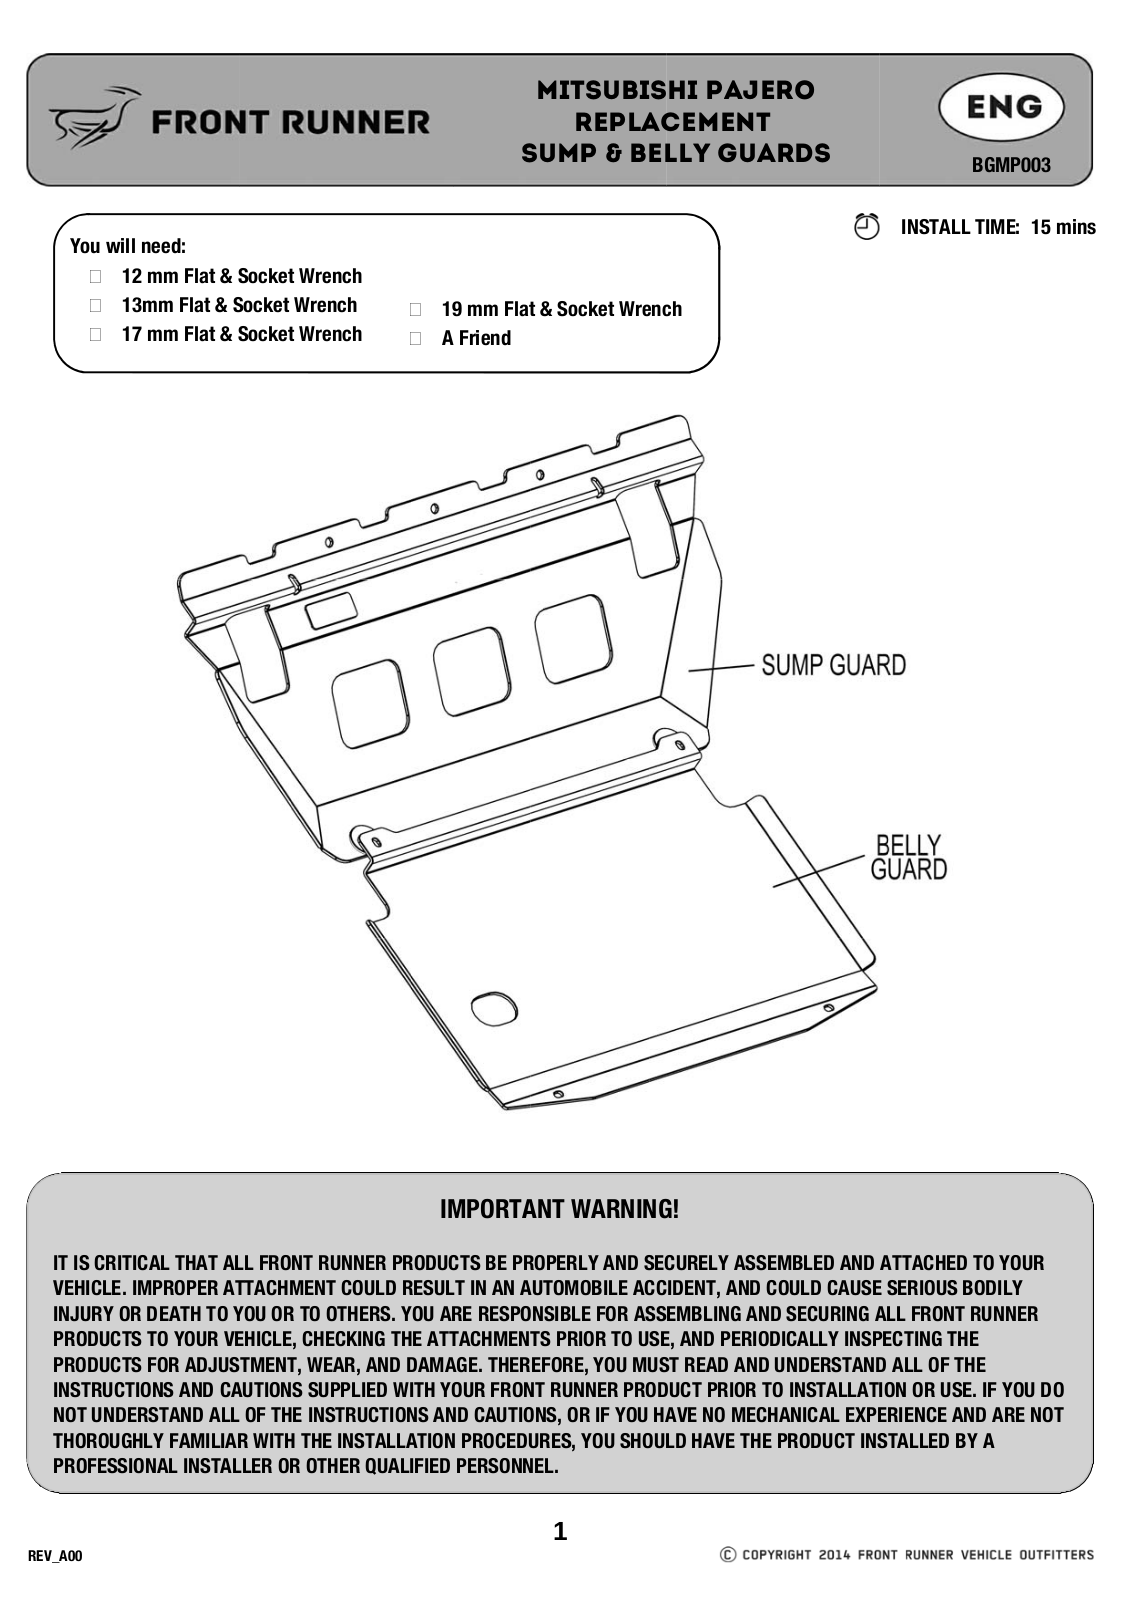 Installation instructions for BGMP003